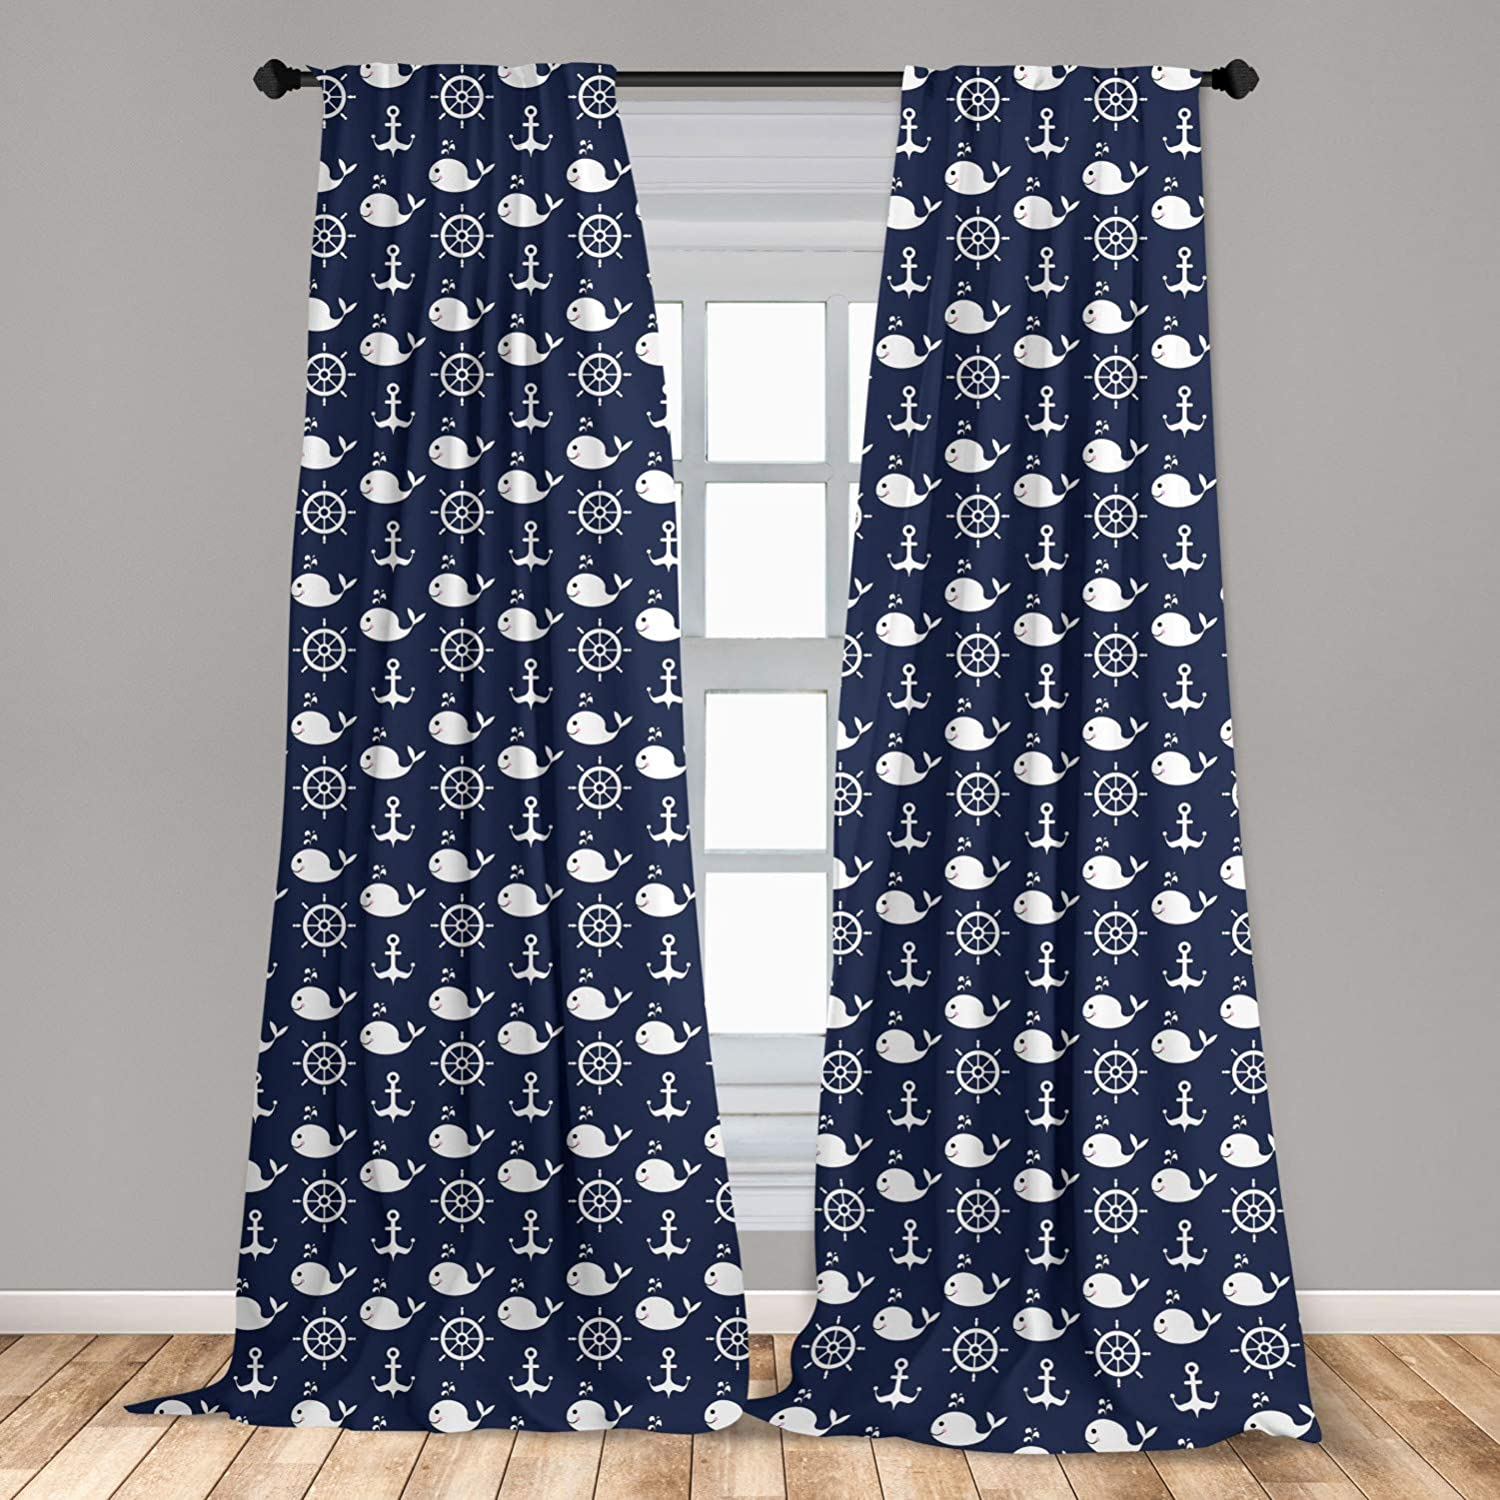 Ambesonne Navy Blue 2 Panel Curtain Set, Maritime Pattern with Whales Helms Anchors Nautical Elements Deep Sea Life, Lightweight Window Treatment Living Room Bedroom Decor, 56